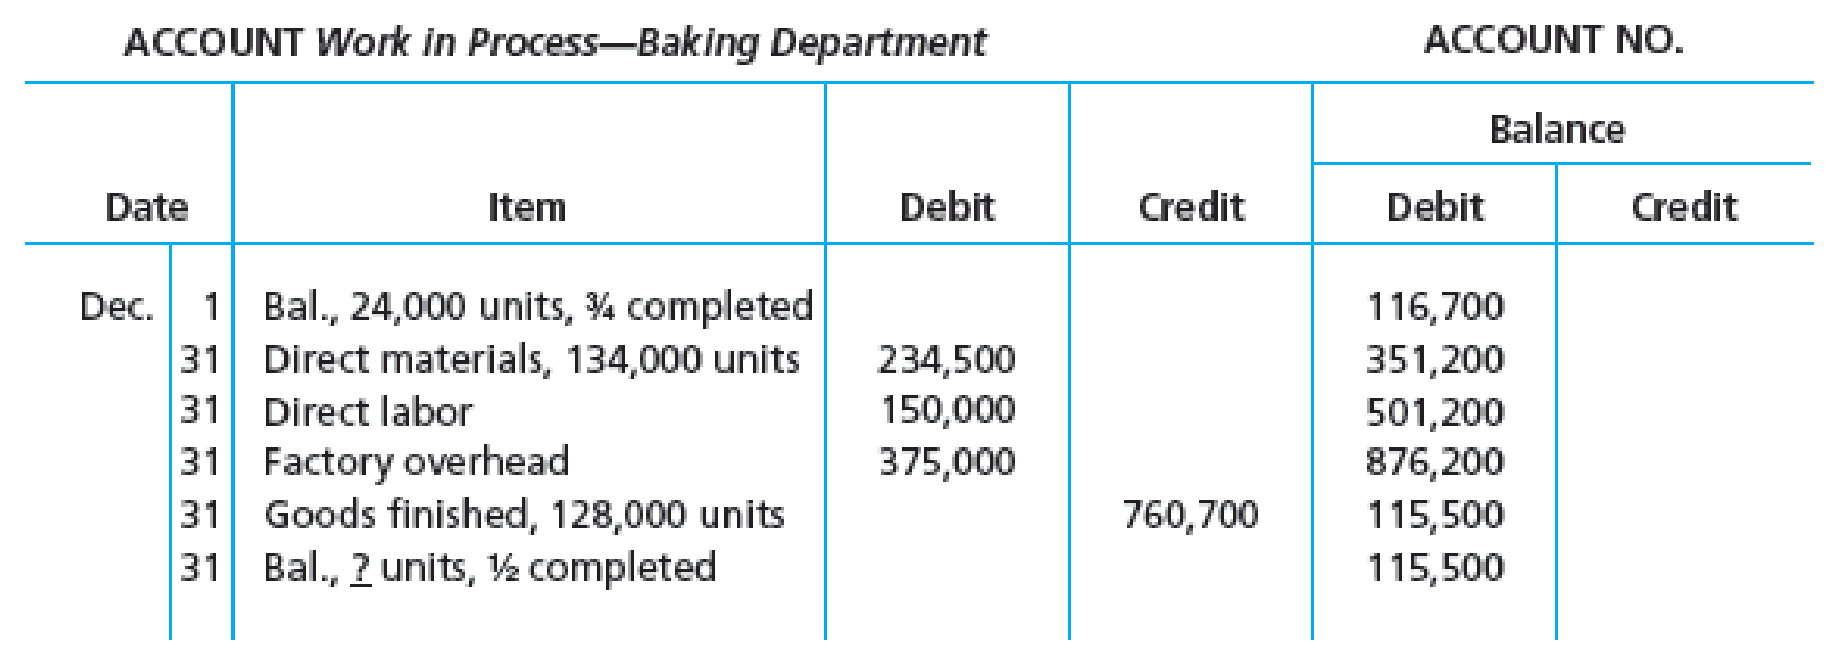 Chapter 17, Problem 7E, The following information concerns production in the Baking Department for December. All direct